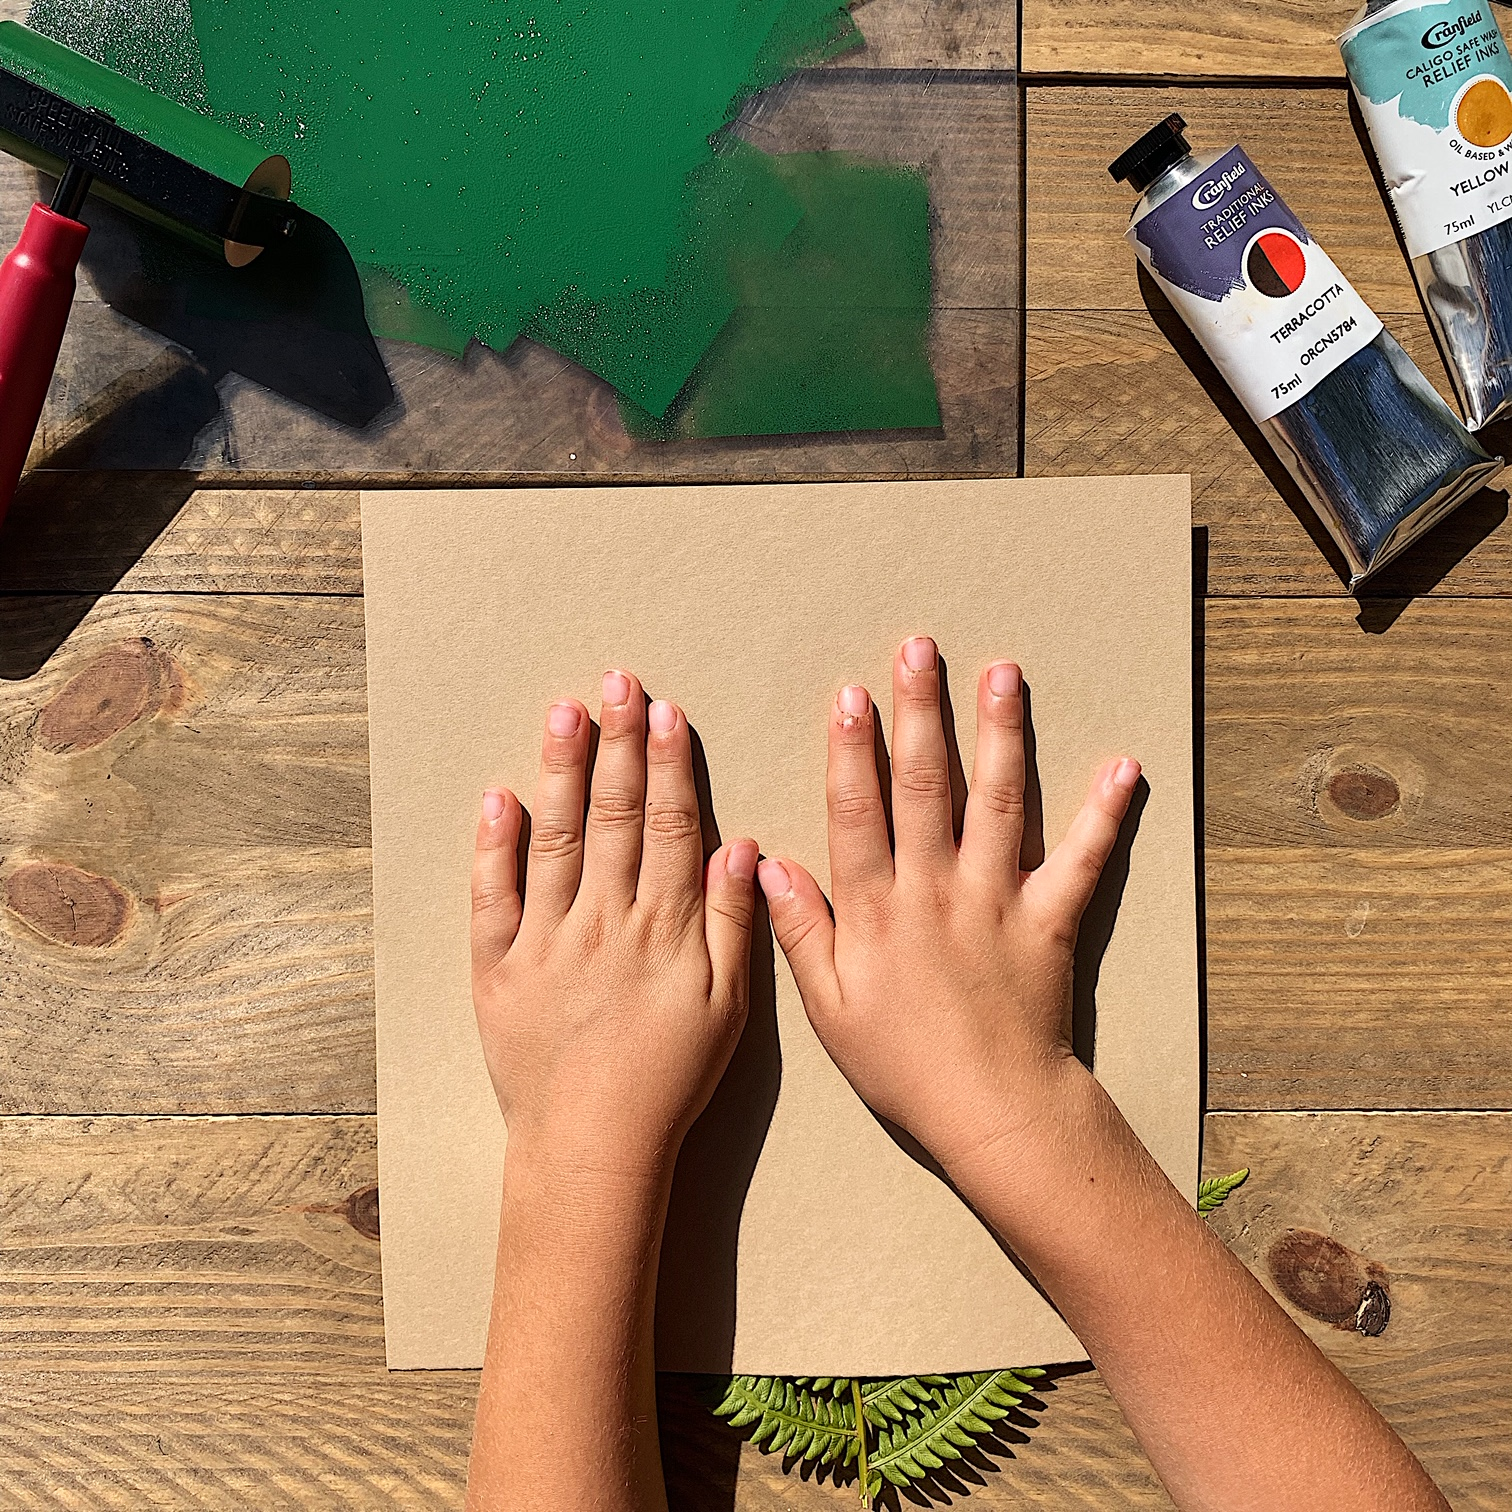 Place your paper - Carefully place your paper on the block. (Parents, if you're doing this with kids and want the image centered on the block, they might need help here.) Once it's on, push gently, careful not to wiggle the paper or let it slip.